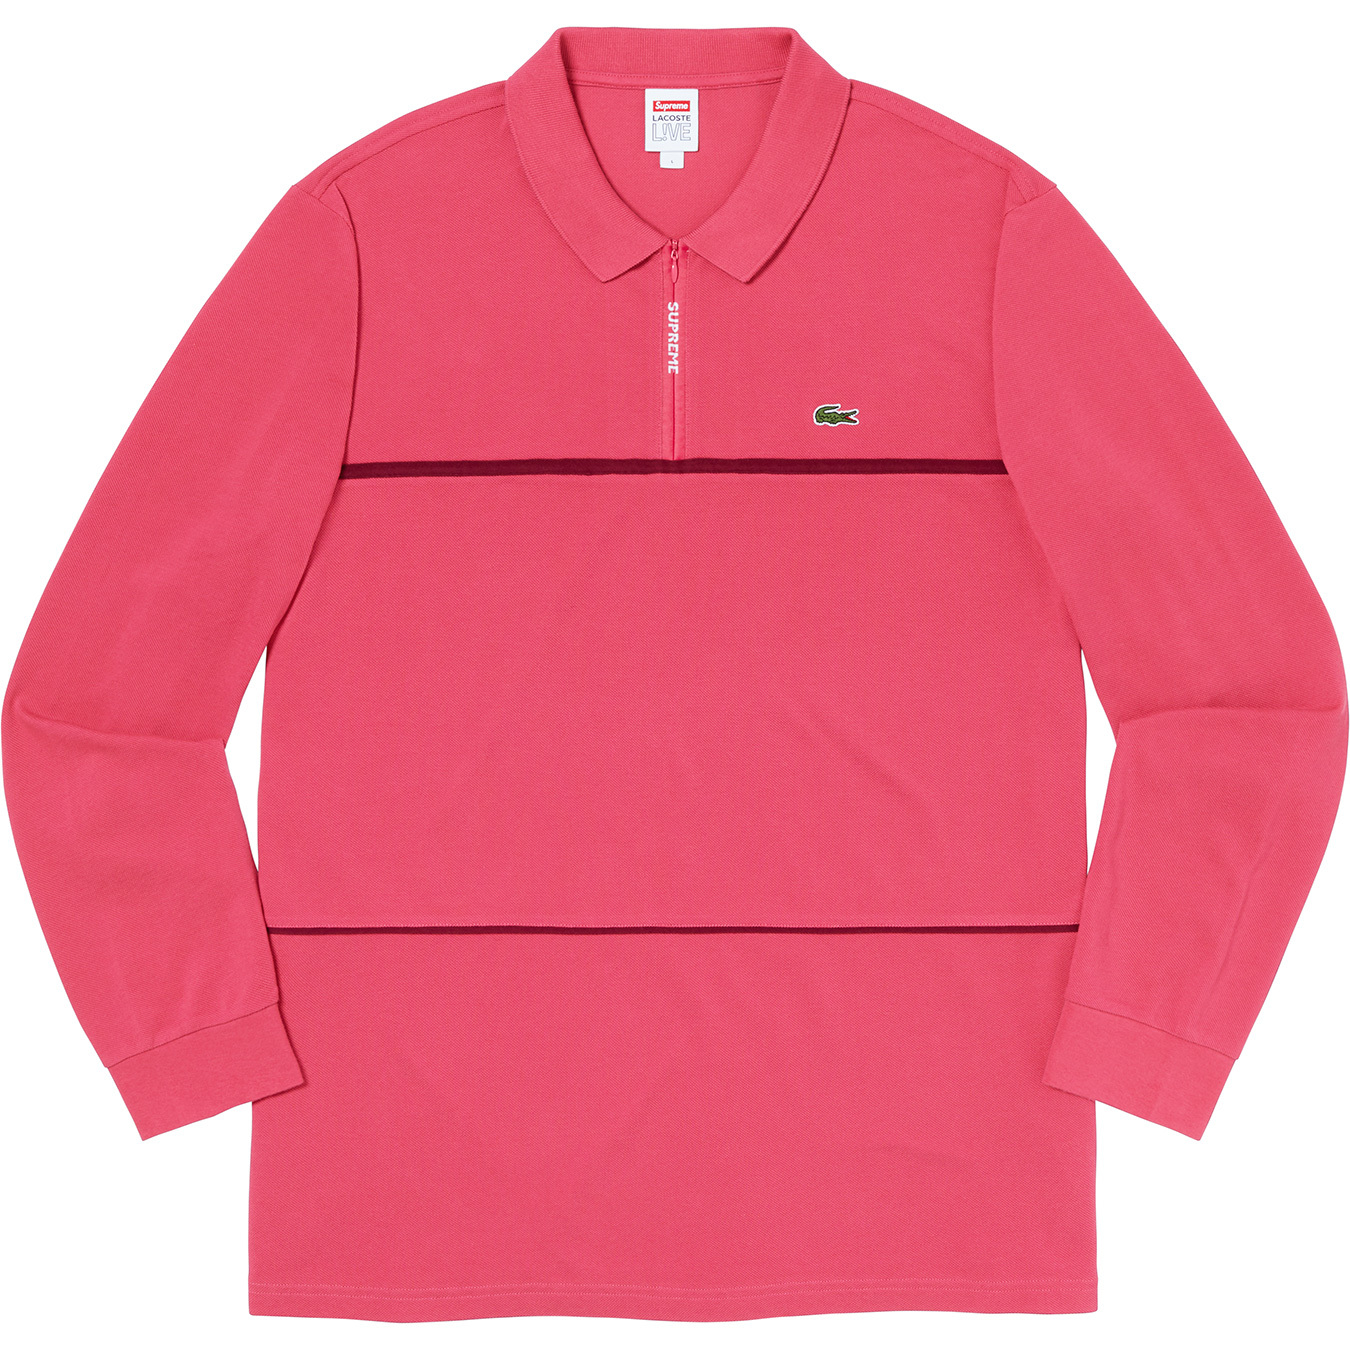 supreme-lacoste-19aw-19fw-collaboration-release-20190928-week5-pique-zip-l-s-polo